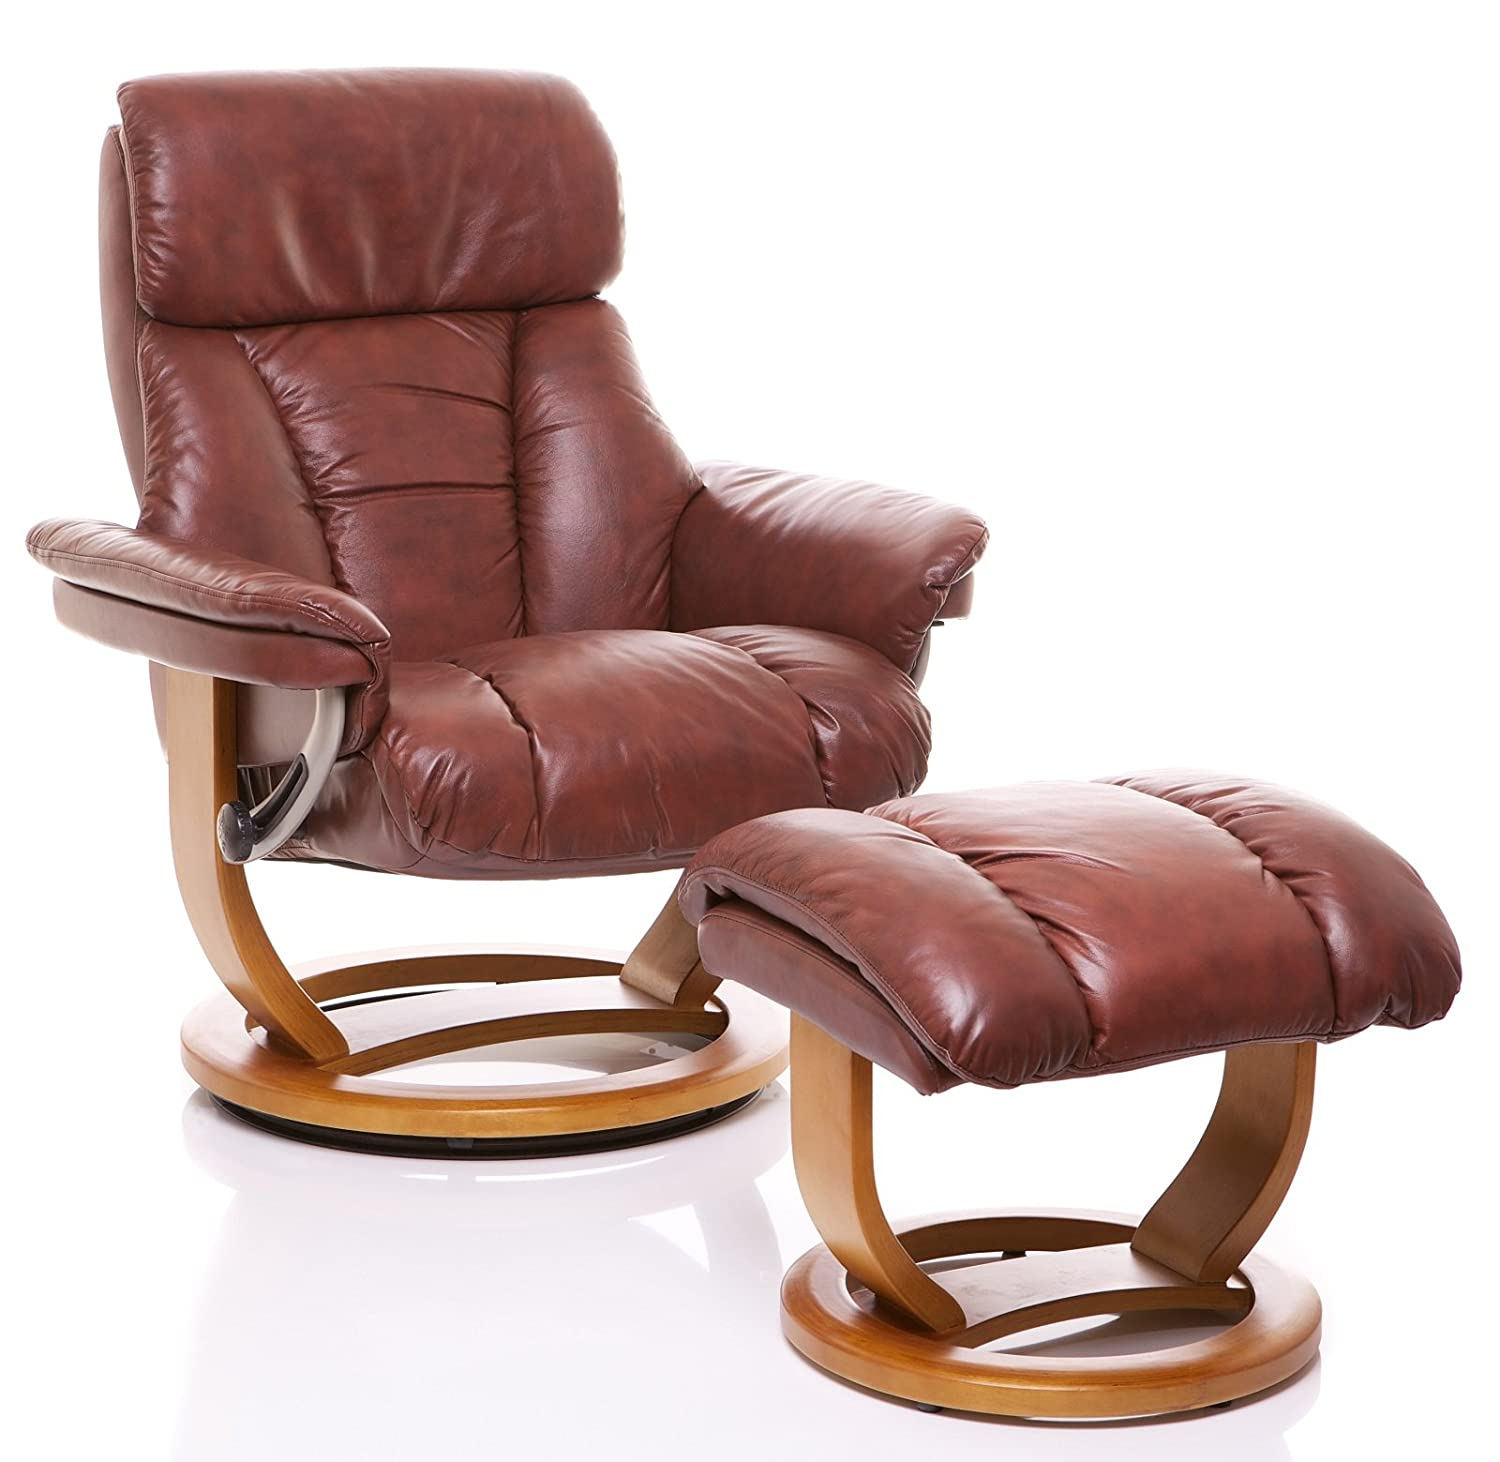 The Mars - Genuine Leather Recliner Swivel Chair u0026 Matching Footstool in Chestnut Amazon.co.uk Kitchen u0026 Home  sc 1 st  Amazon UK & The Mars - Genuine Leather Recliner Swivel Chair u0026 Matching ... islam-shia.org